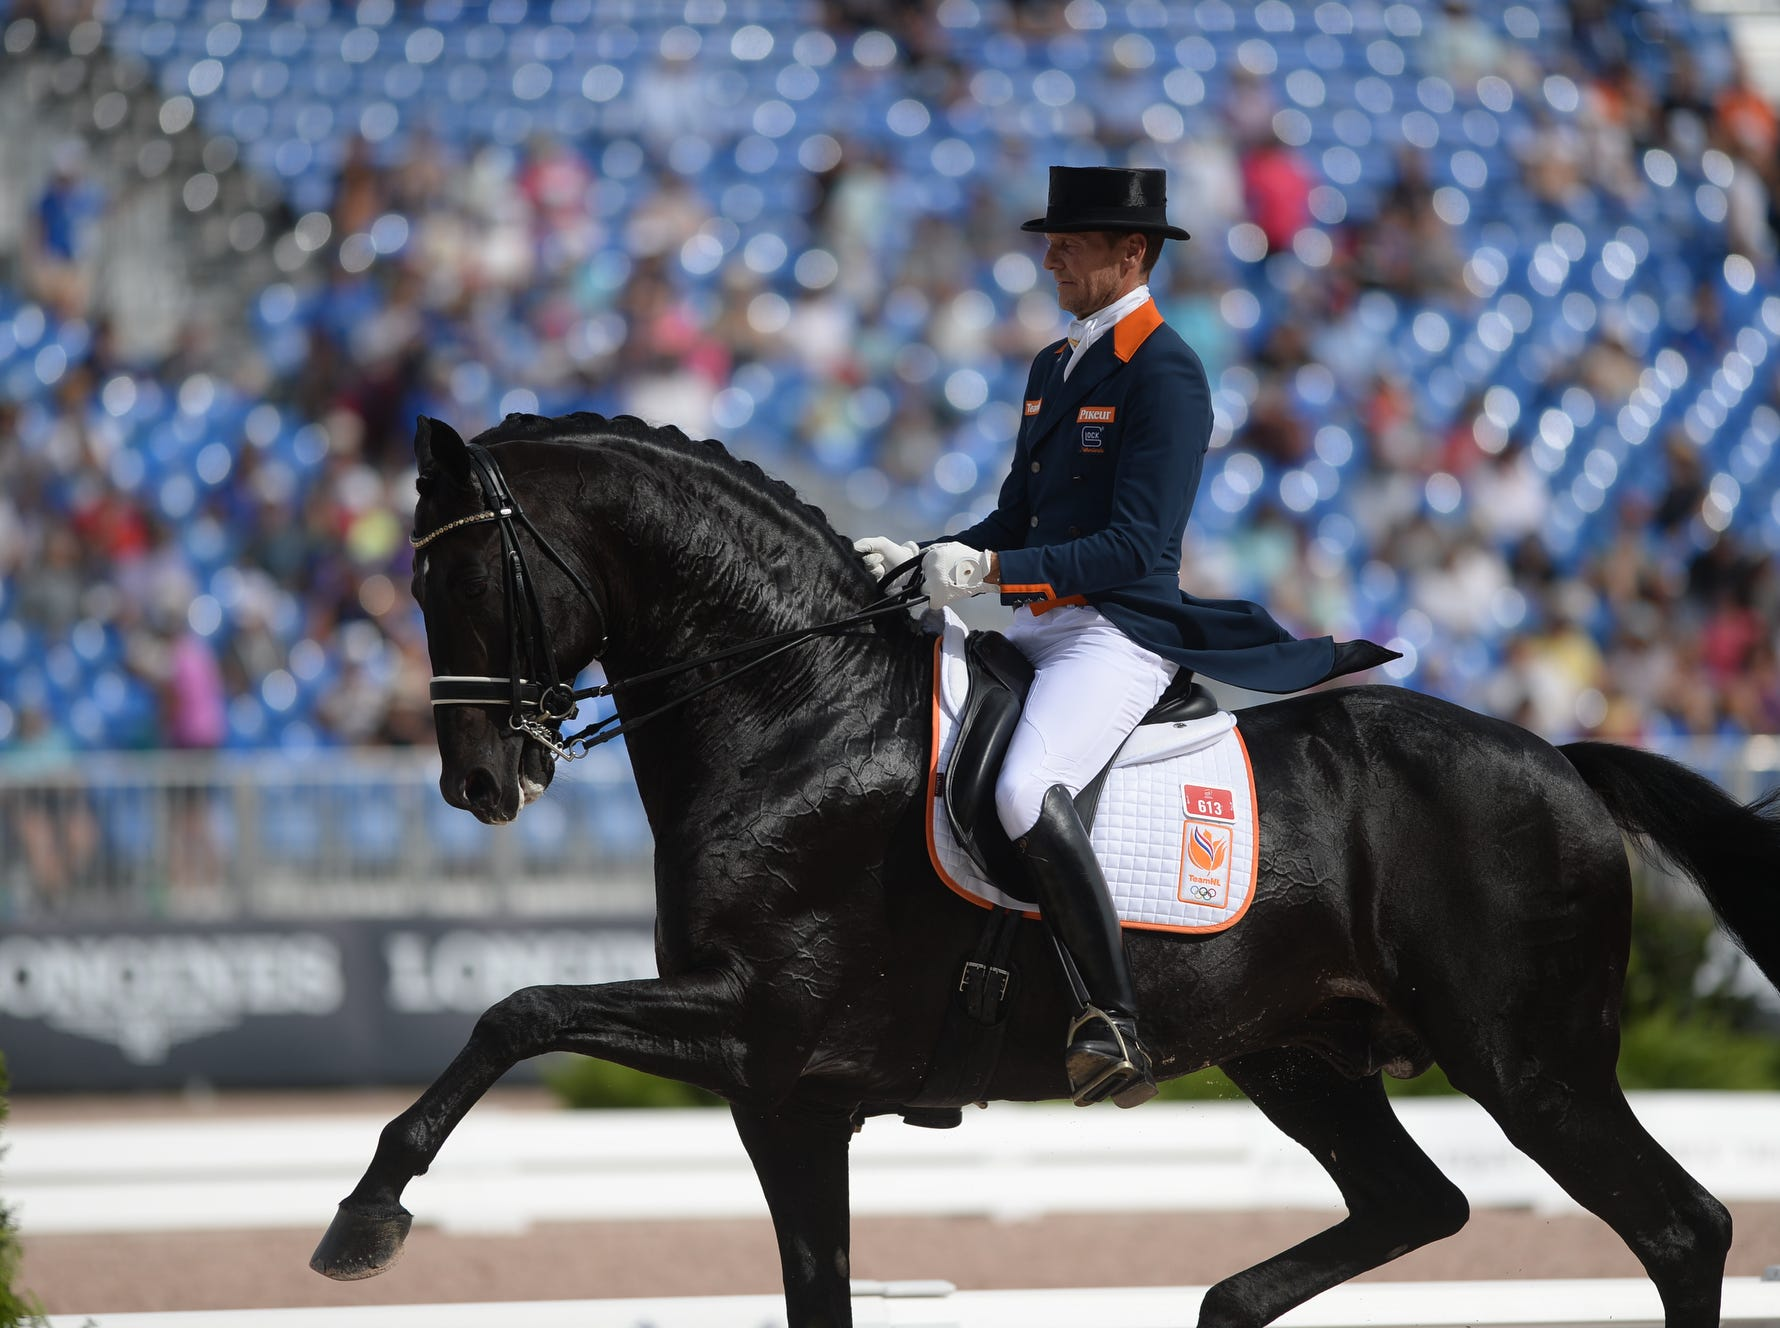 The Netherlands' Edward Gal rides GlockÕs Zonick N.O.P. during the dressage competition at the World Equestrian Games in Tryon Sept. 14, 2018.